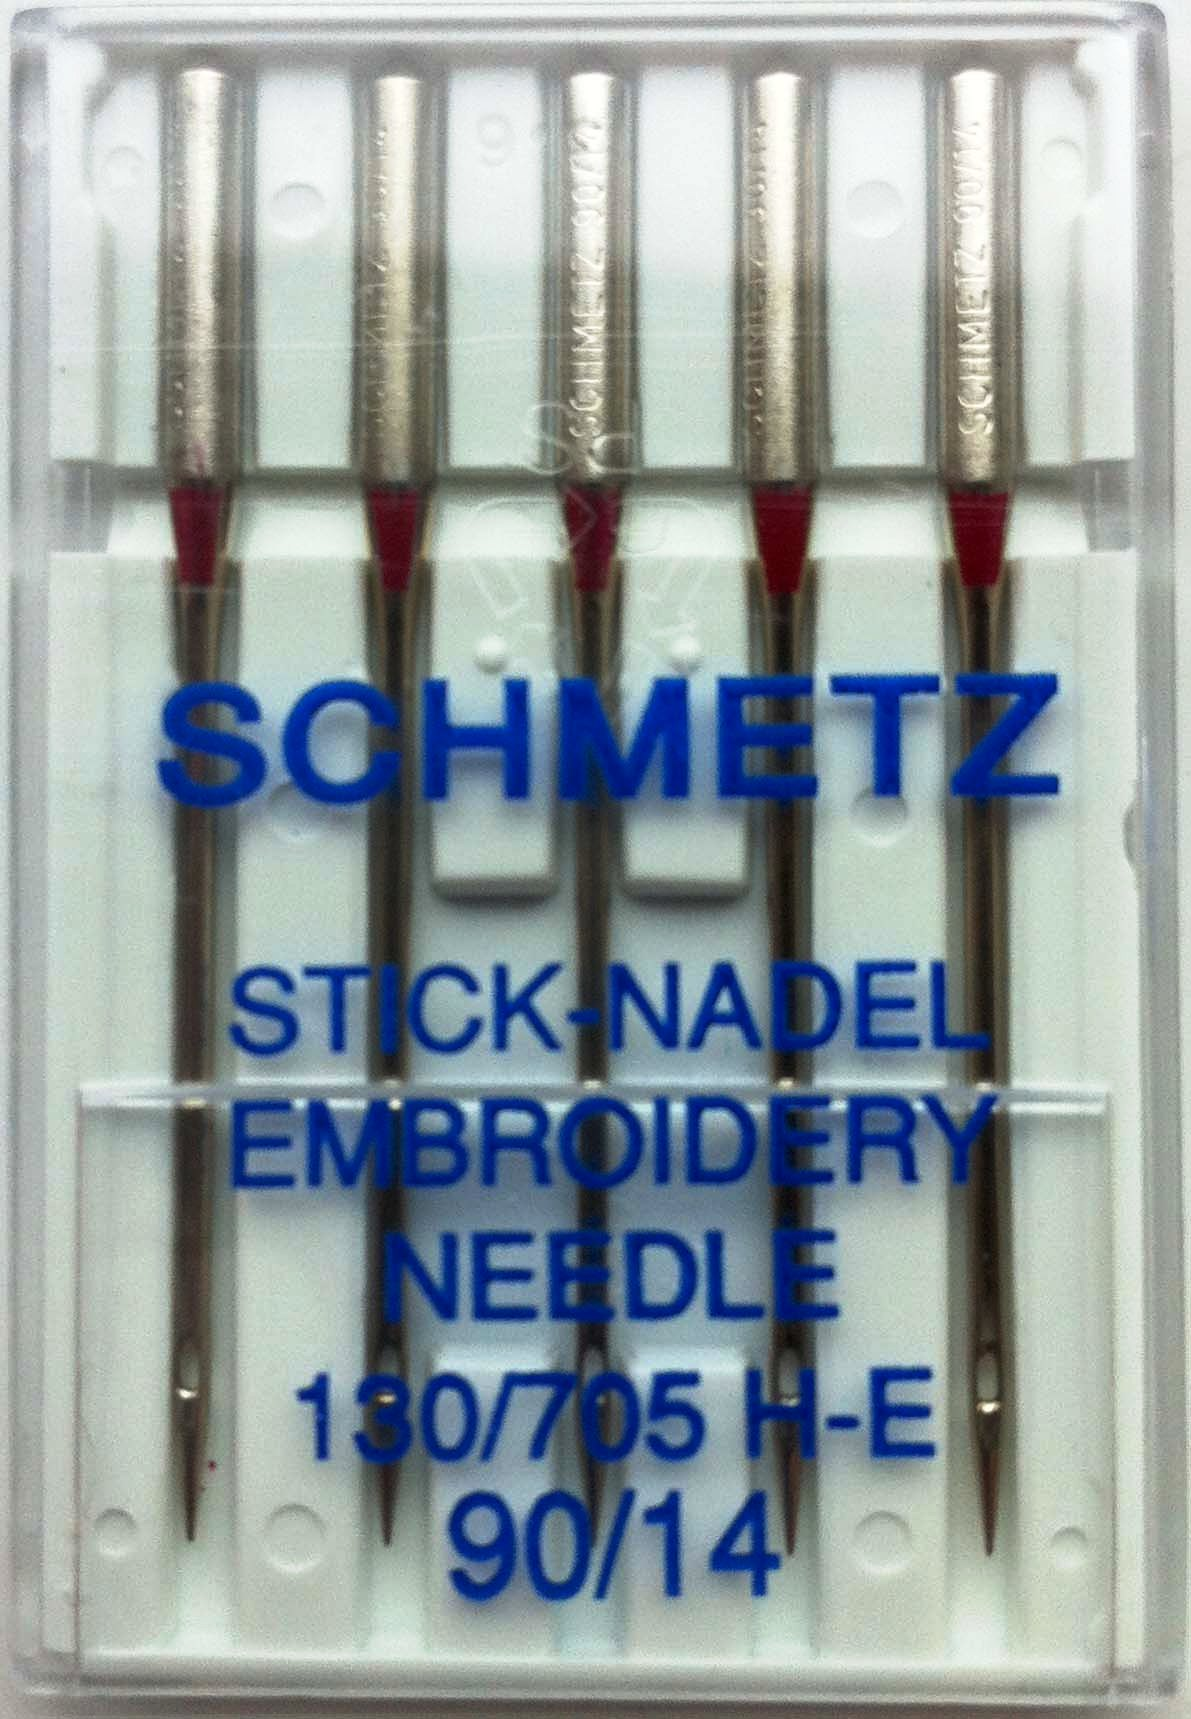 Schmetz Domestic Needles - Embroidery